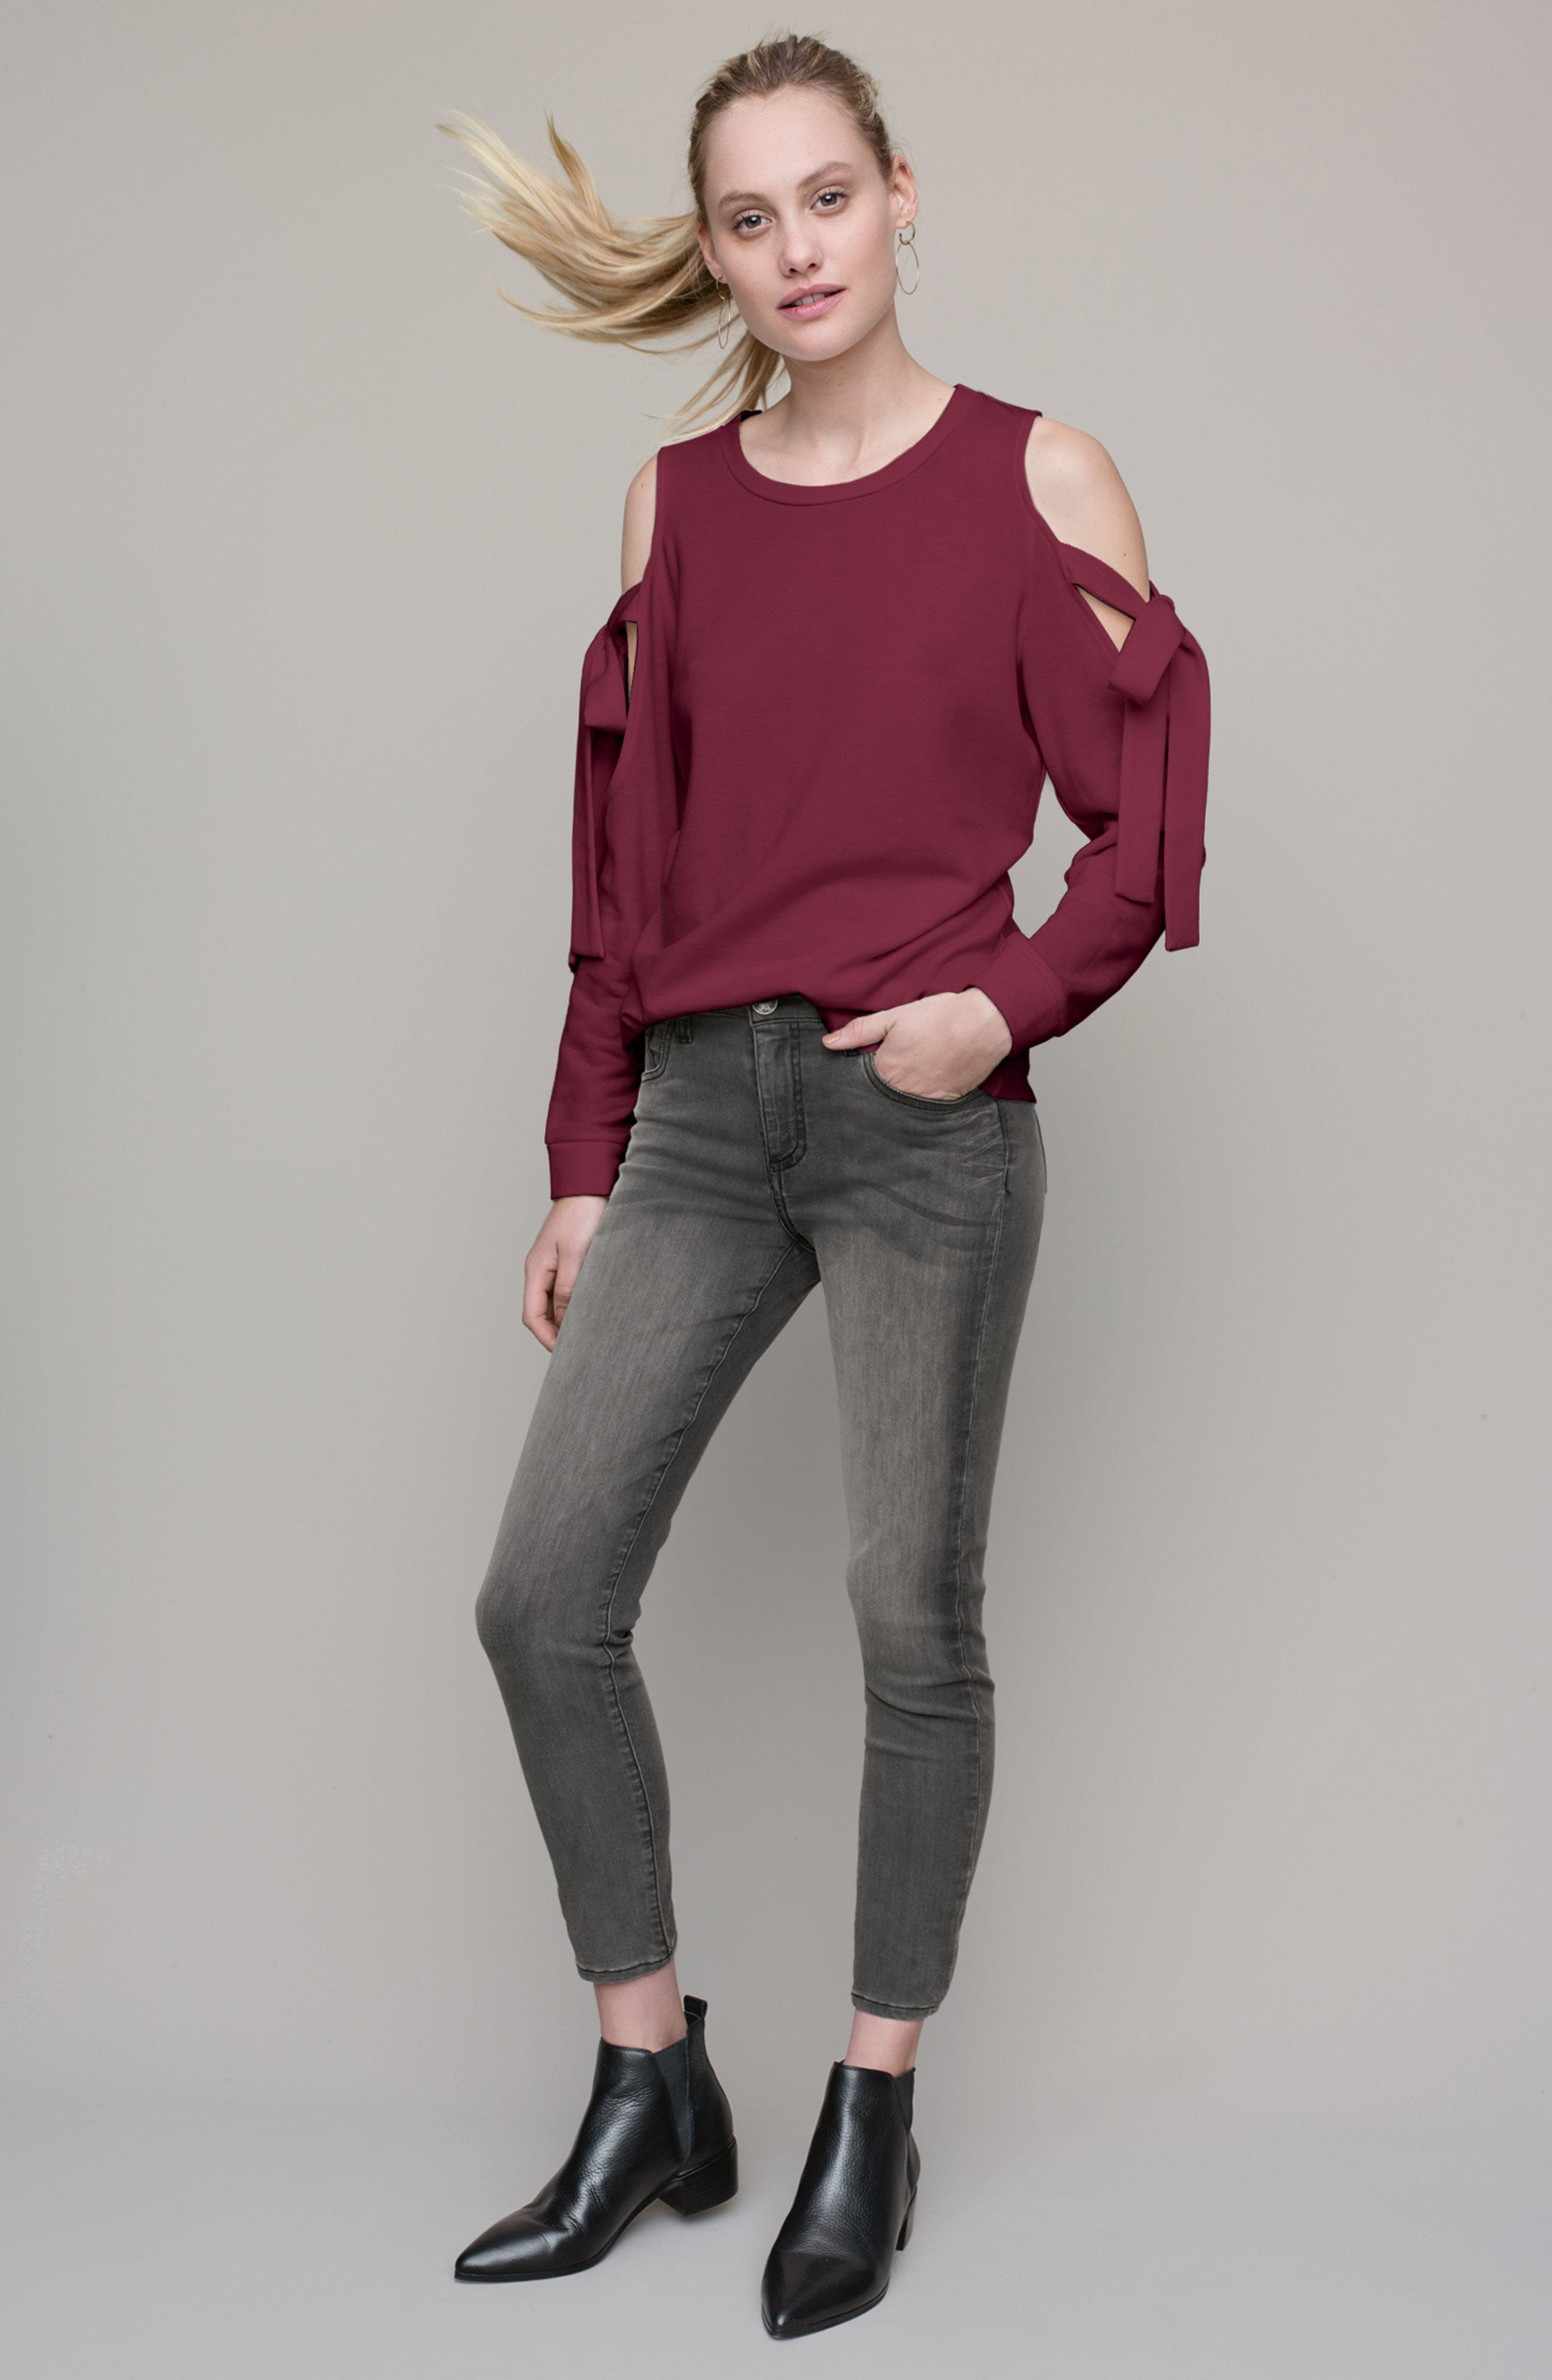 Pleione Sweatshirt & KUT from the Kloth Jeans Outfit with Accessories